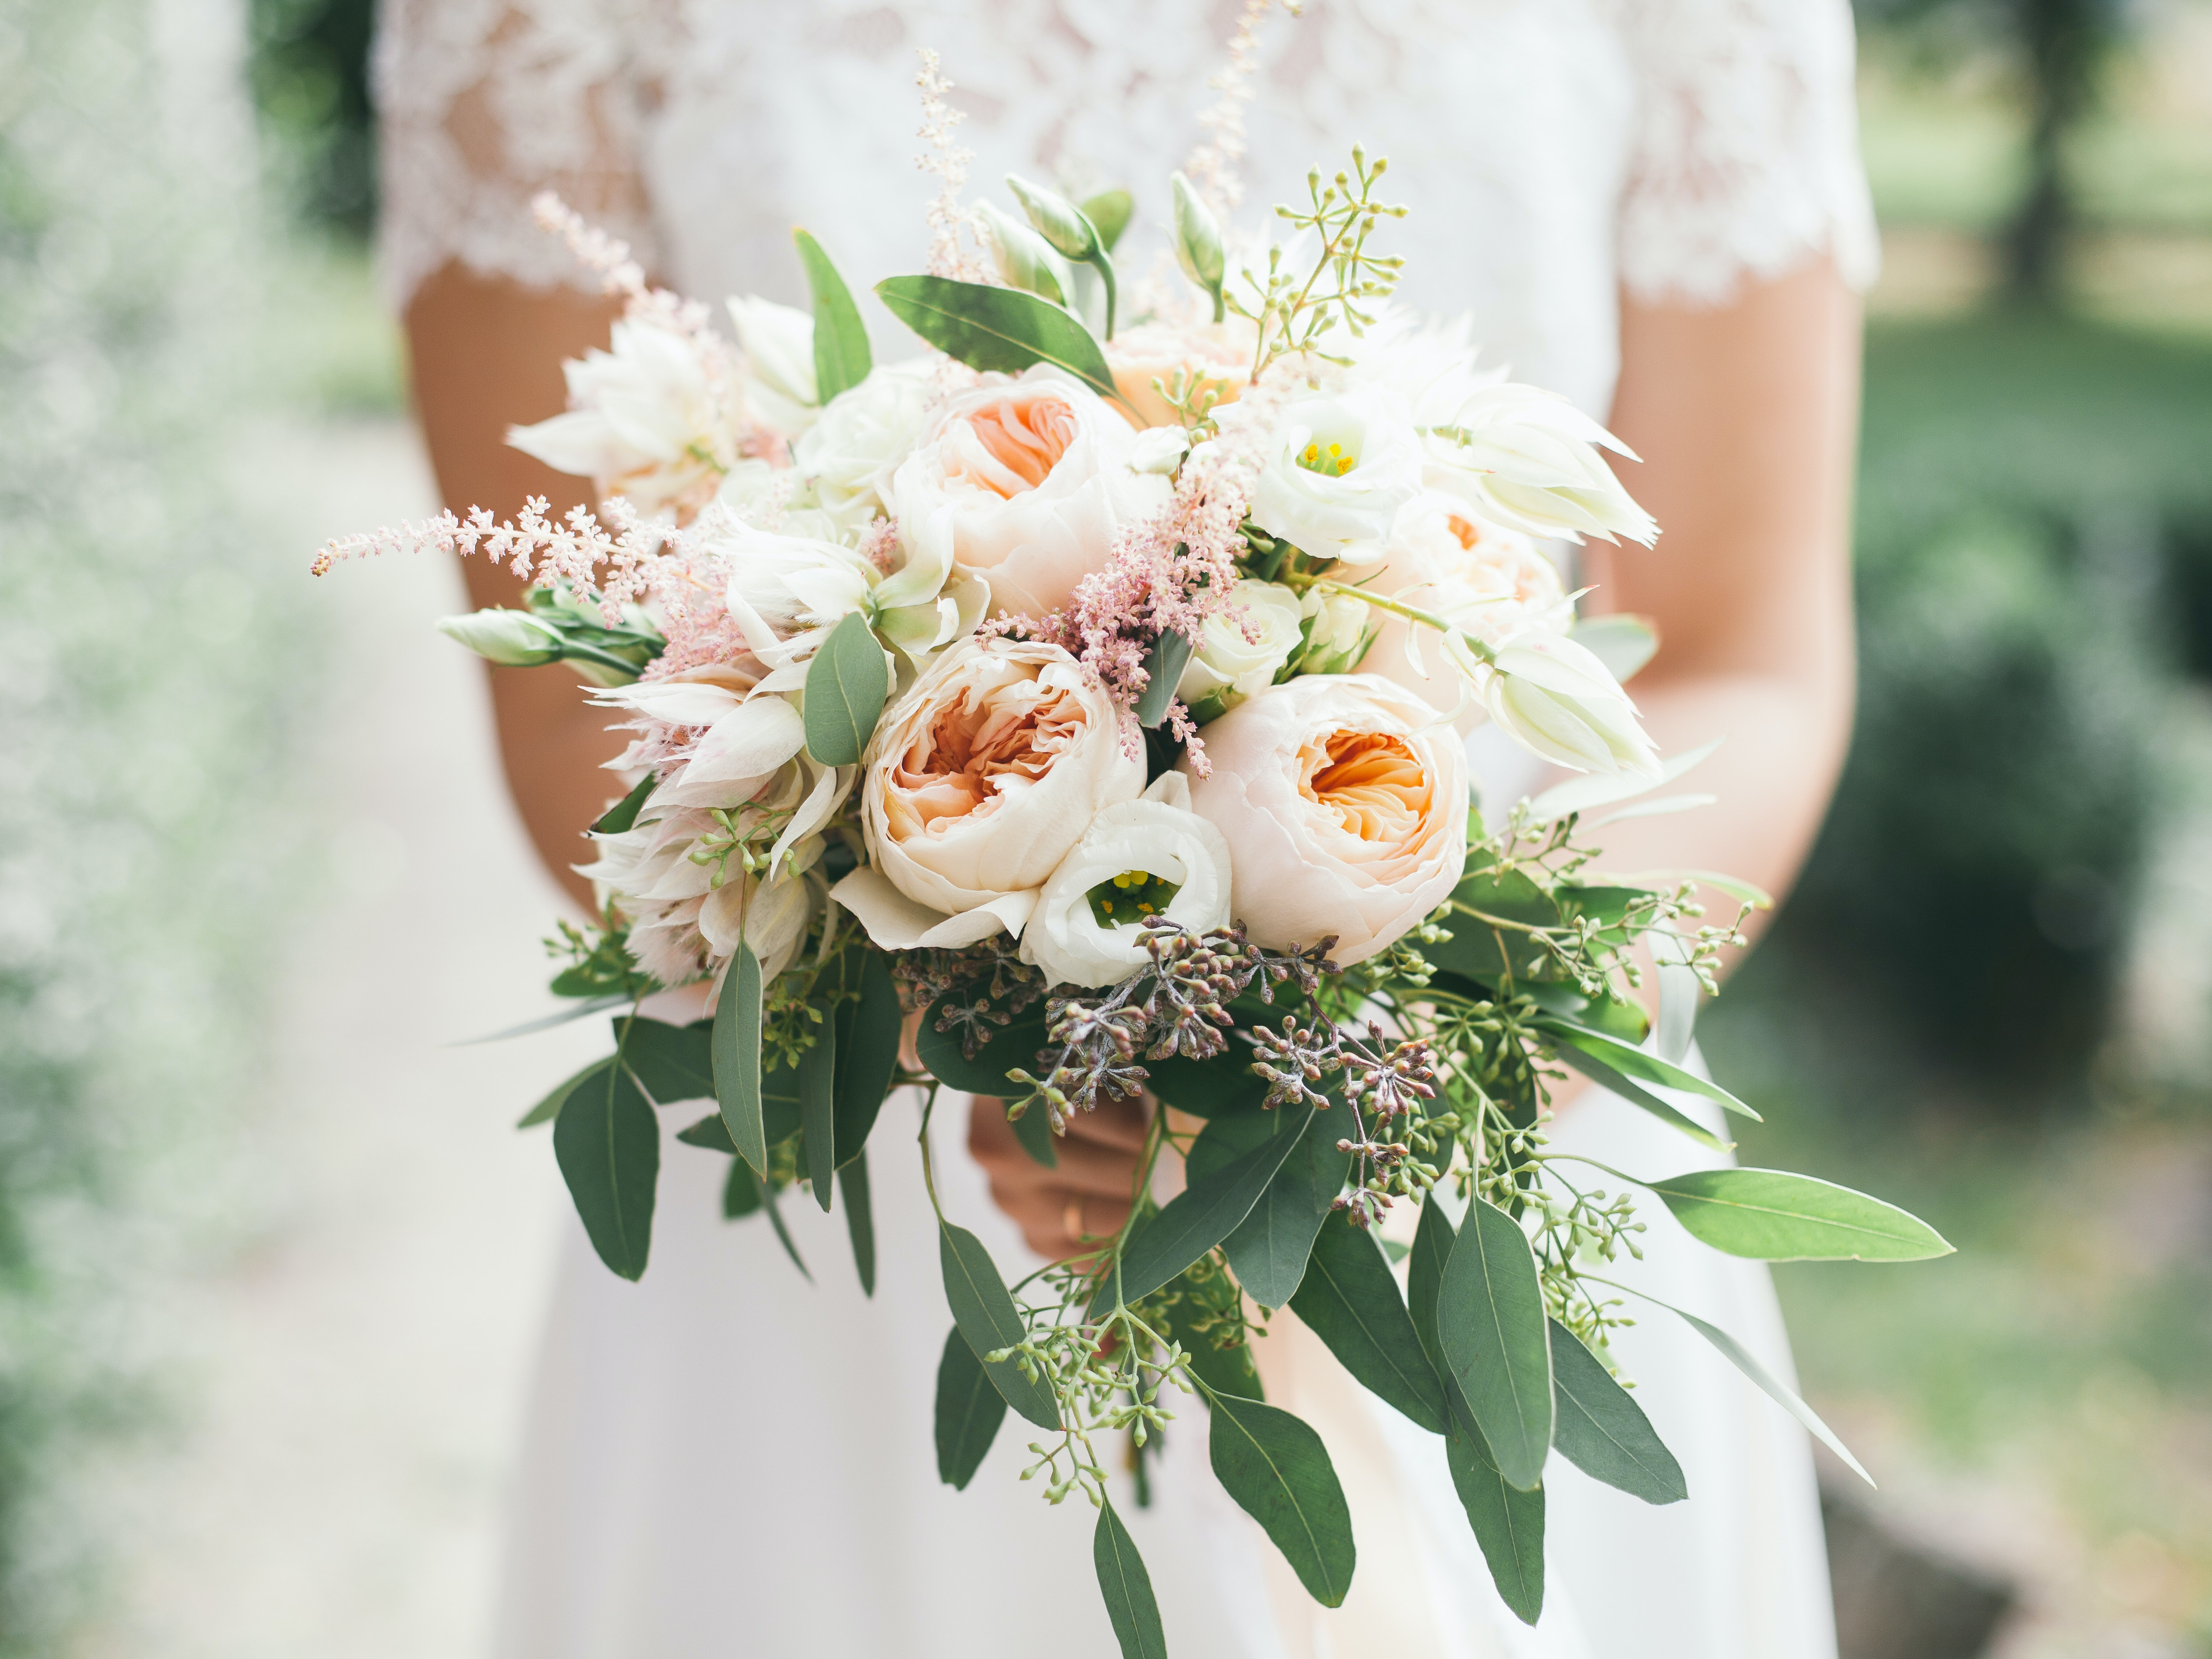 what to do with your wedding flowers after the big day, so